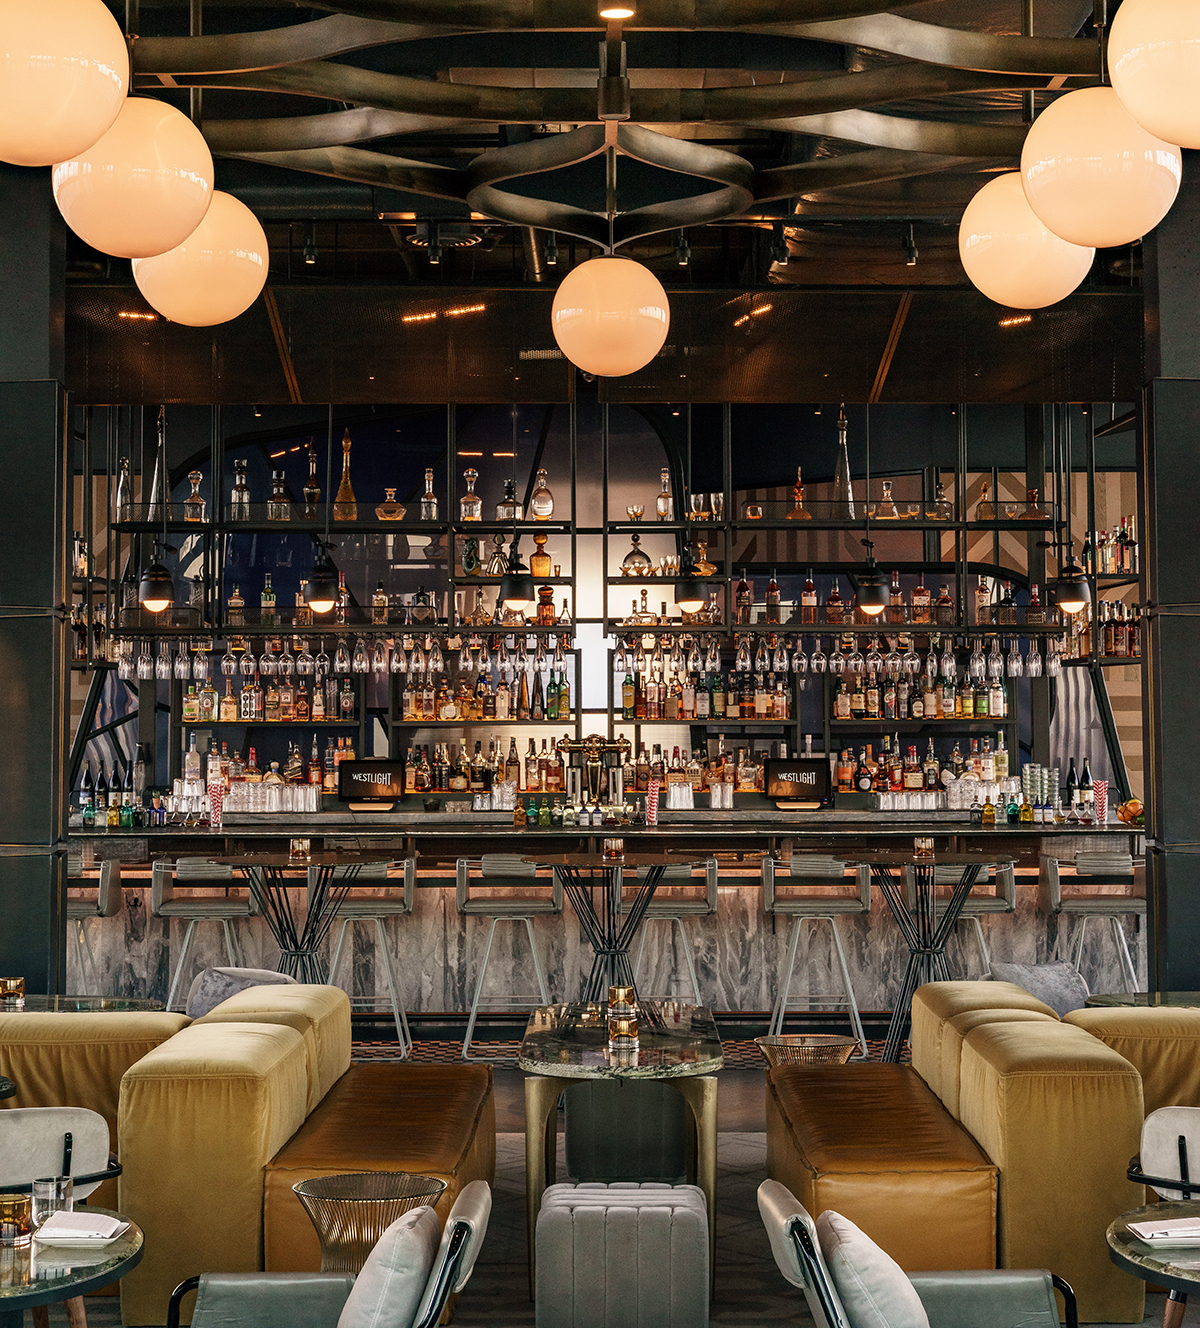 Restaurant Bar Interior Design: Westlight - Studio Munge